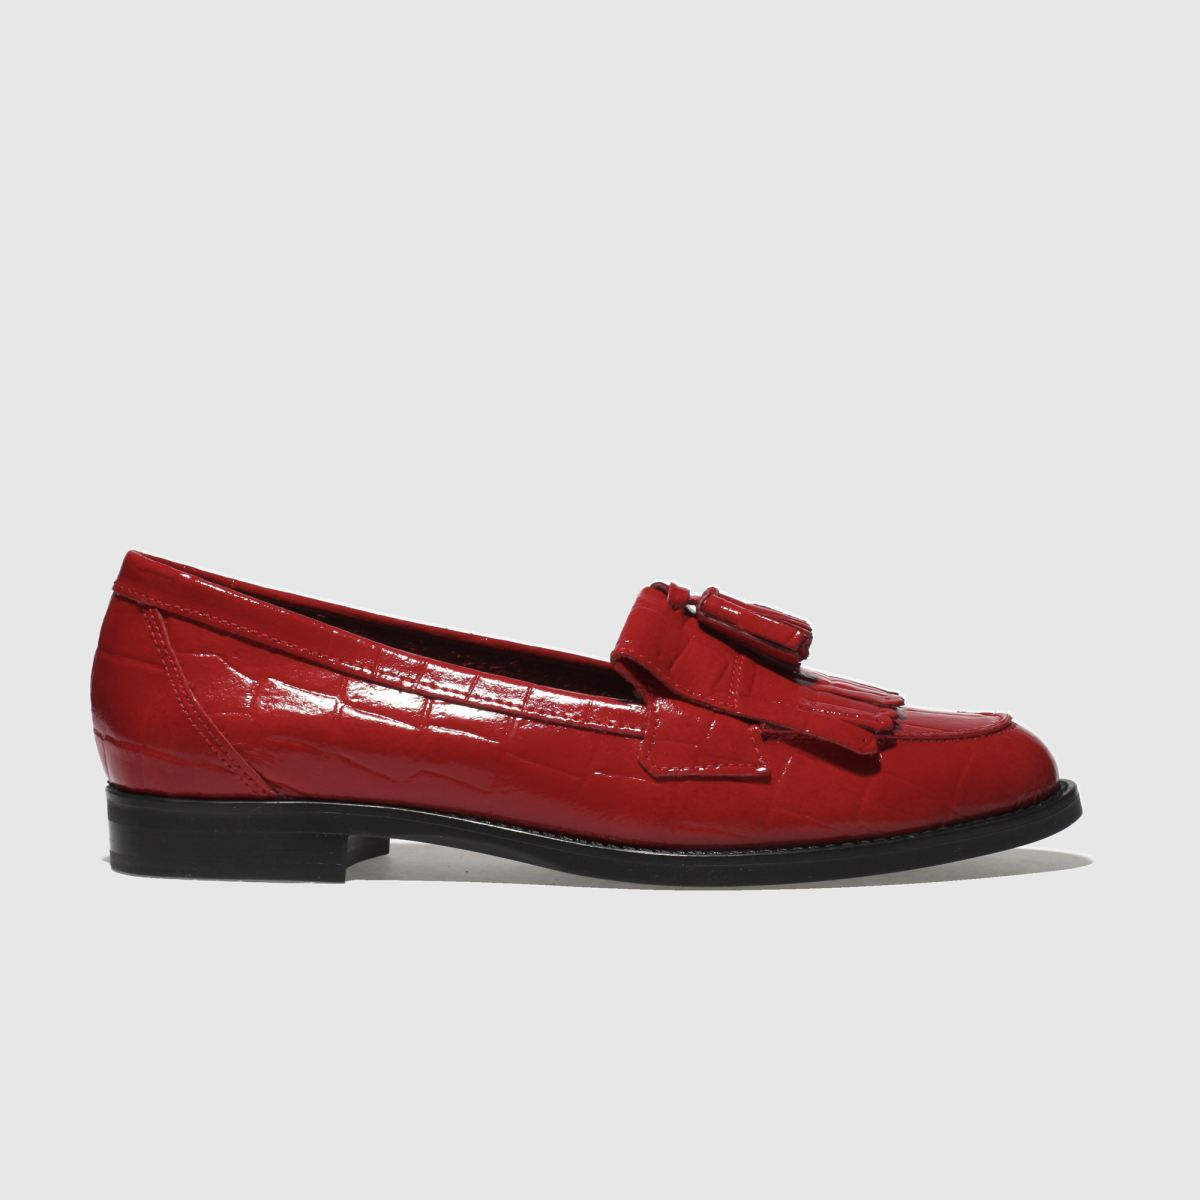 Schuh Red Compass Flat Shoes